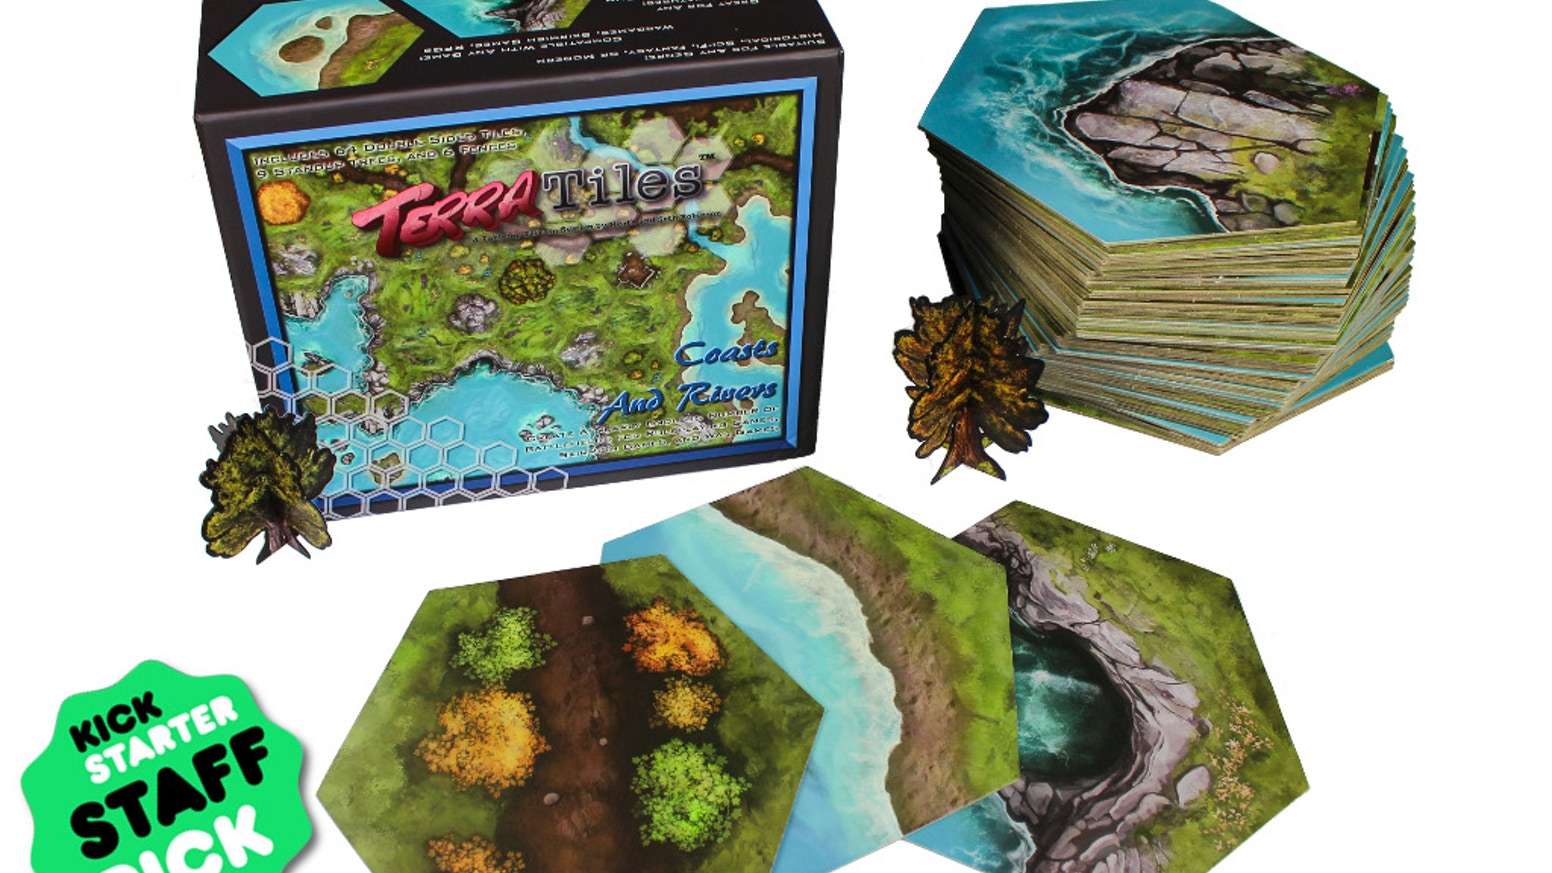 A Tabletop Terrain System for Miniature Games, Wargames, and RPGs. Affordable, Portable, and Easy to Store - Covers 24 Square Feet!